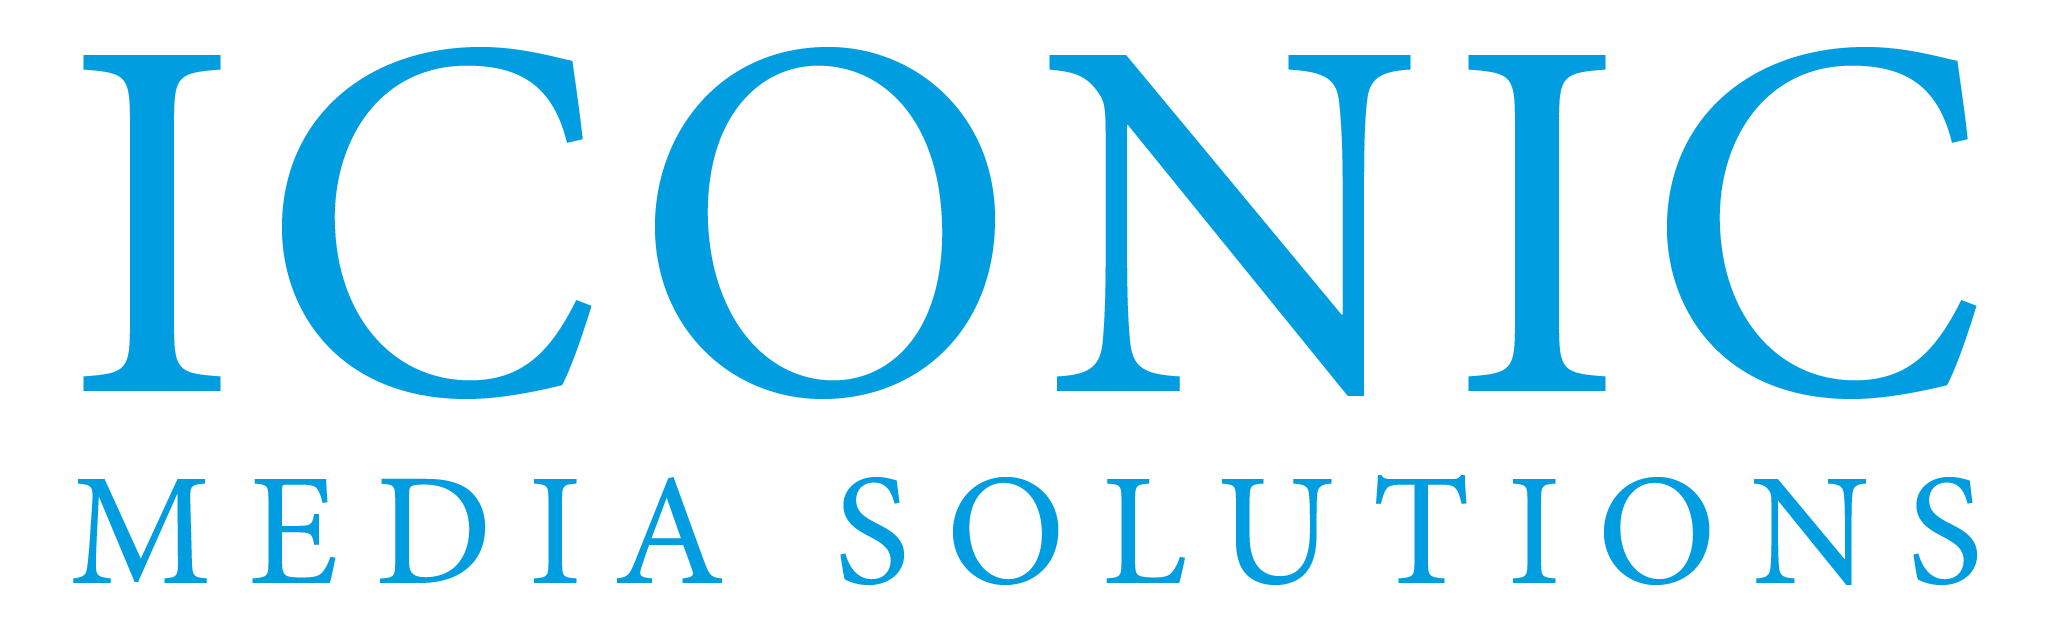 Iconic Media Solutions supporting Status Row